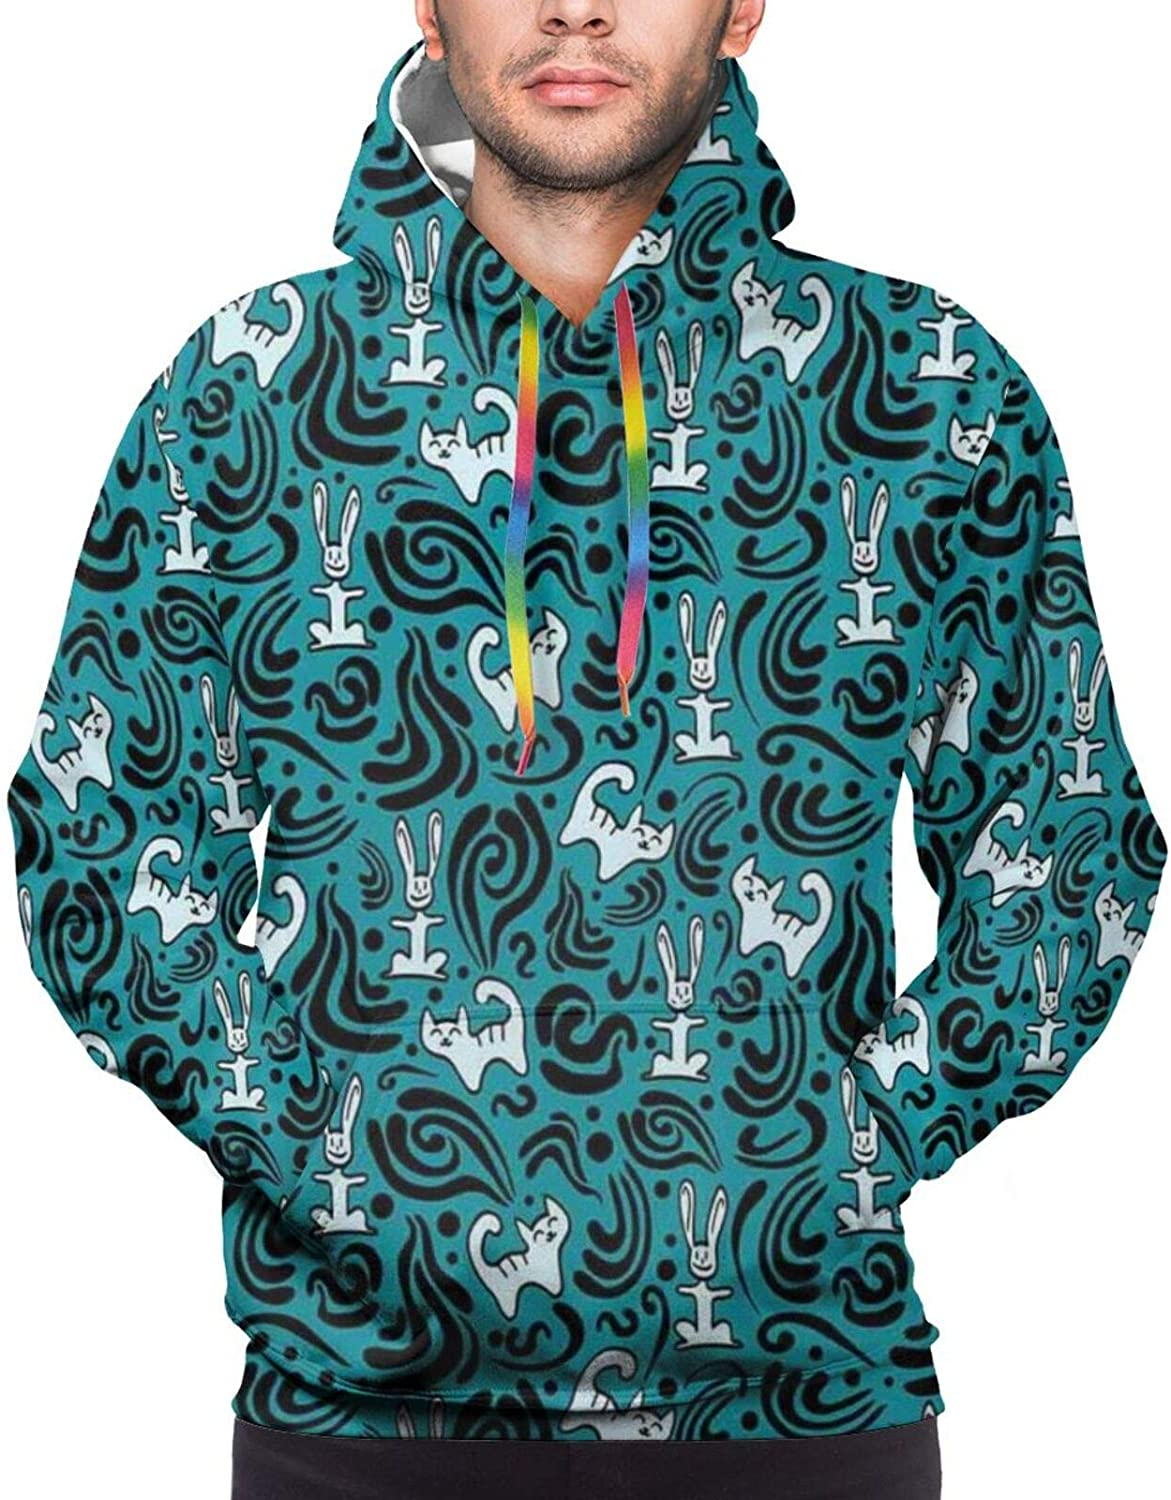 Men's Hoodies Sweatshirts,Abstract Cat and Bunnies with Black Swirls Curves and Dots Pattern,Small